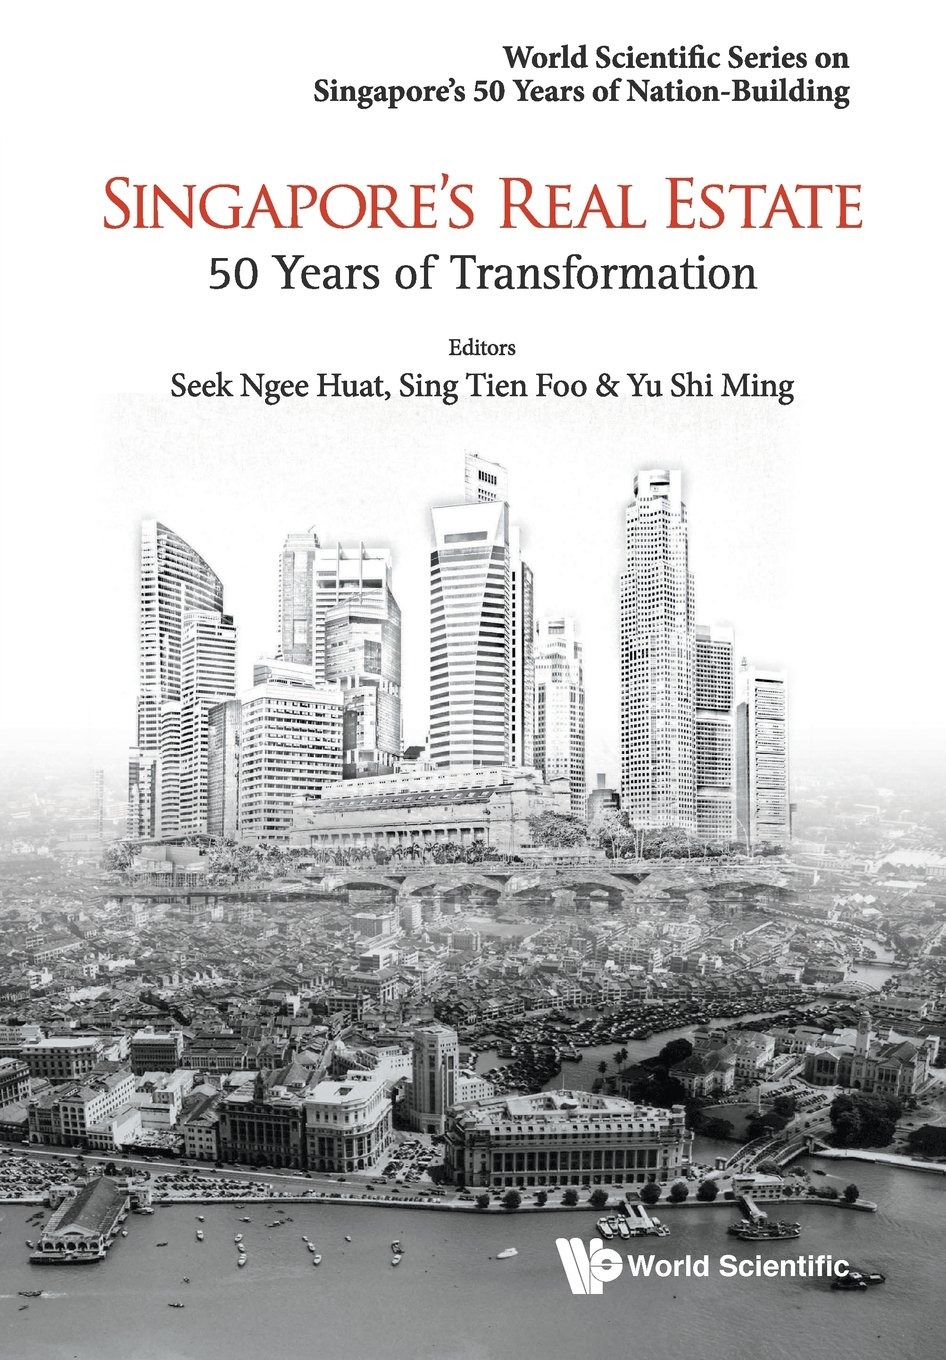 Singapore's Real Estate: 50 Years Of Transformation (World Scientific Series on Singapore's 50 Years of Nation-building)